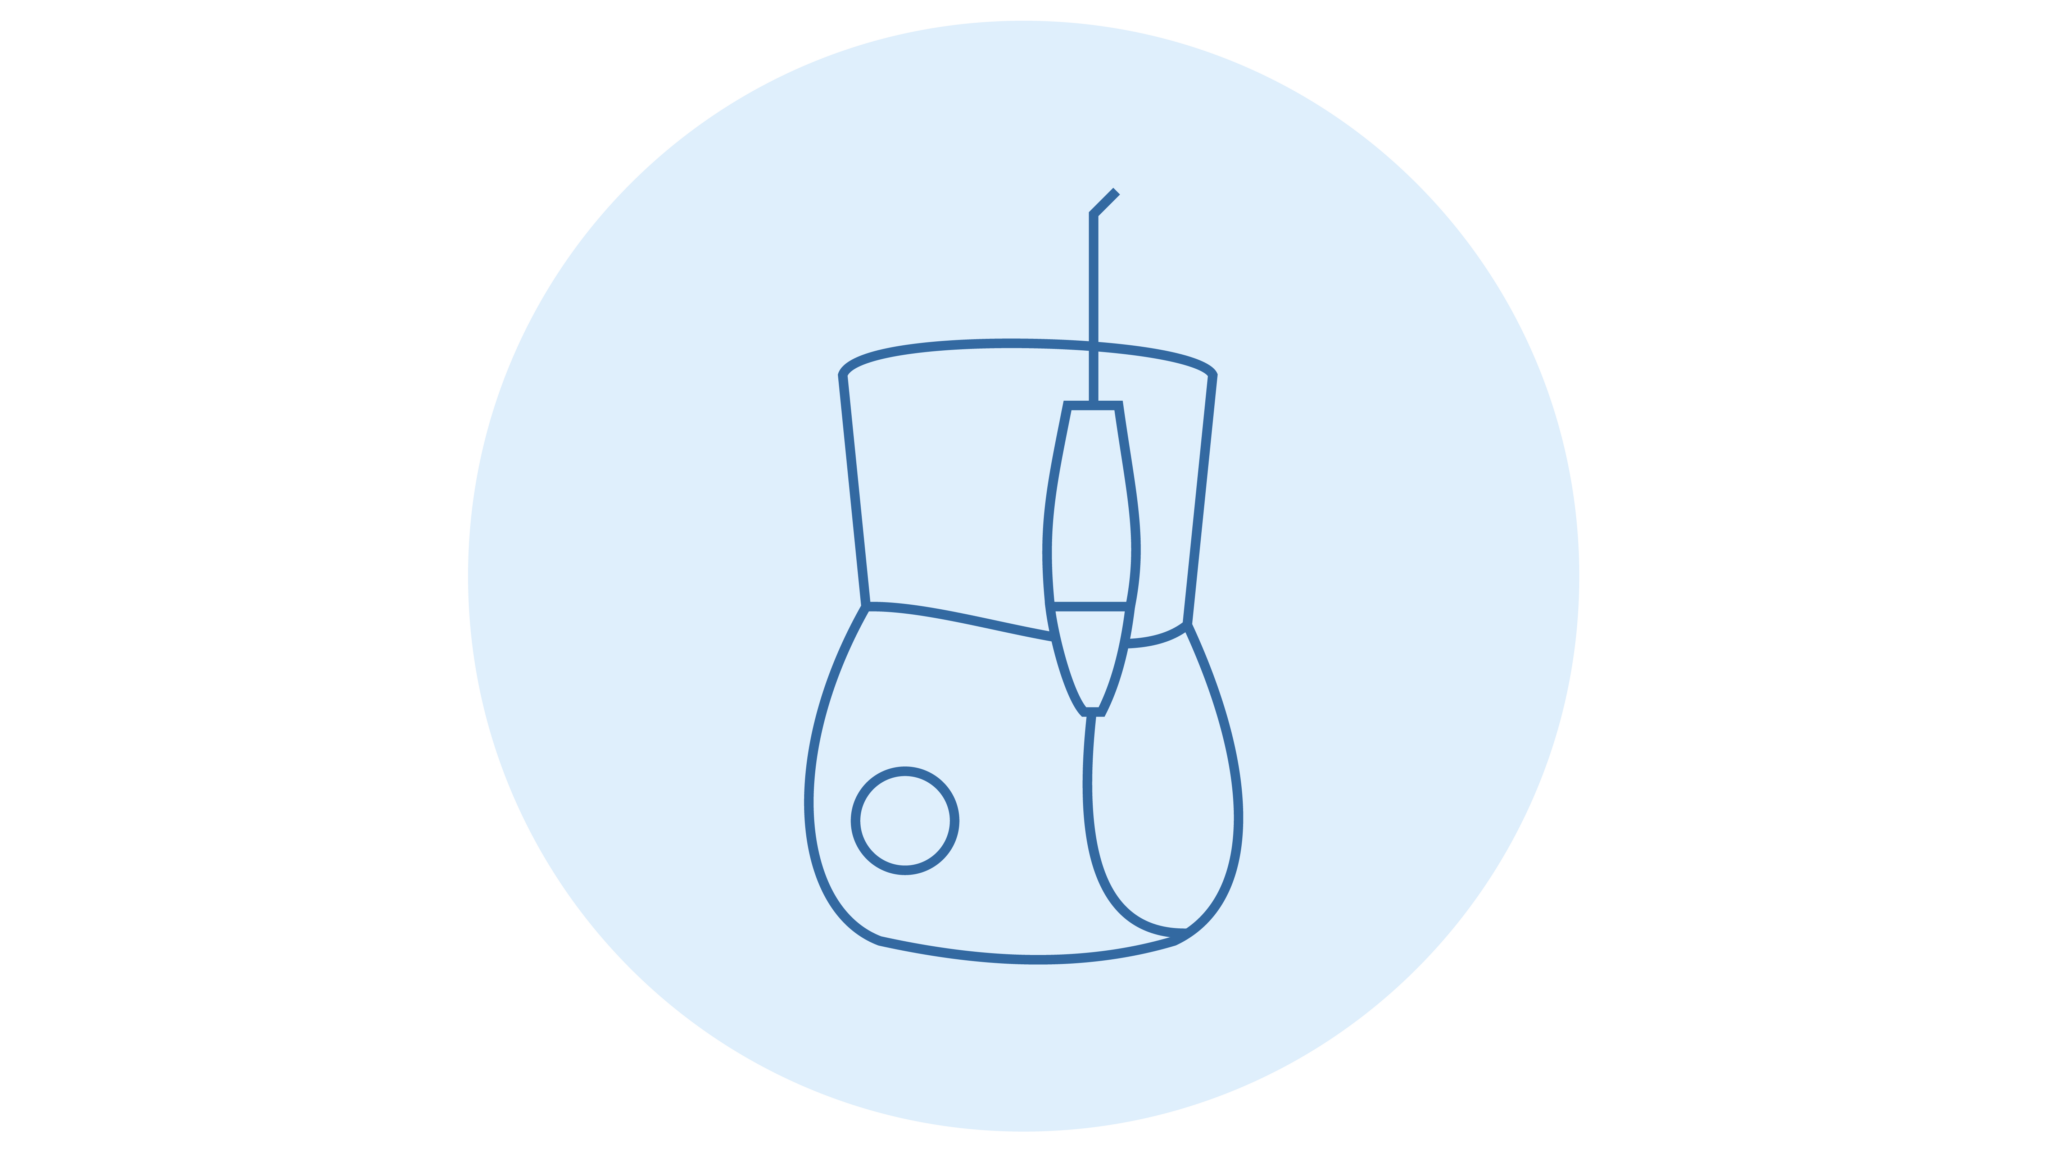 water flosser icon